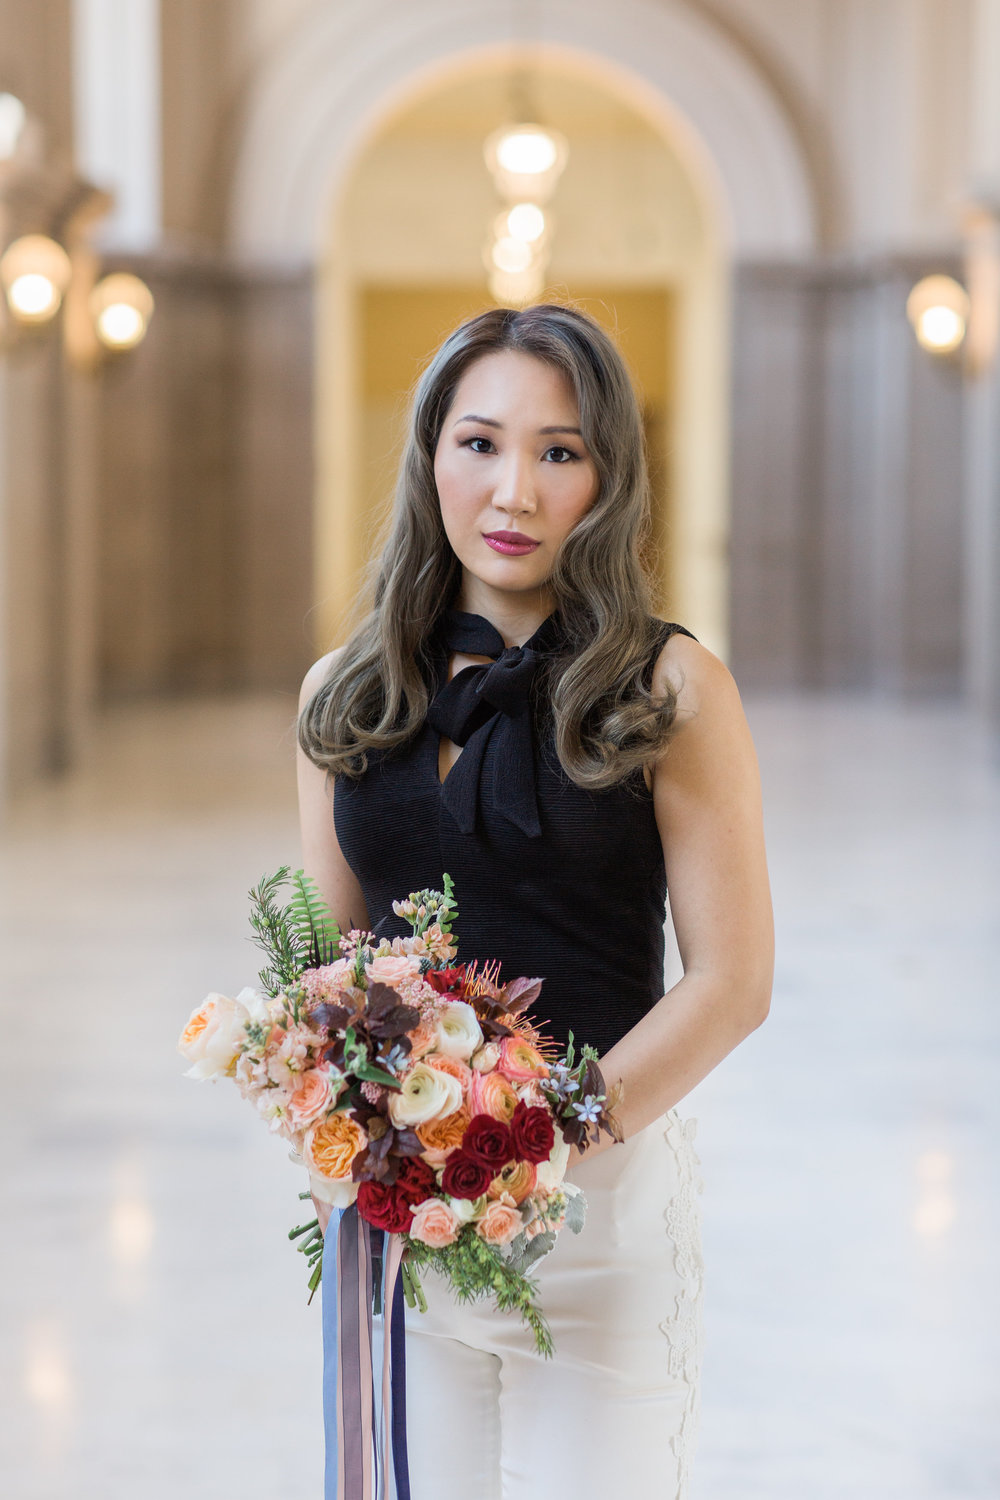 San Francisco City Hall Lesbian LGBTQ Elopement Styled Wedding Shoot by Buena Lane Photography